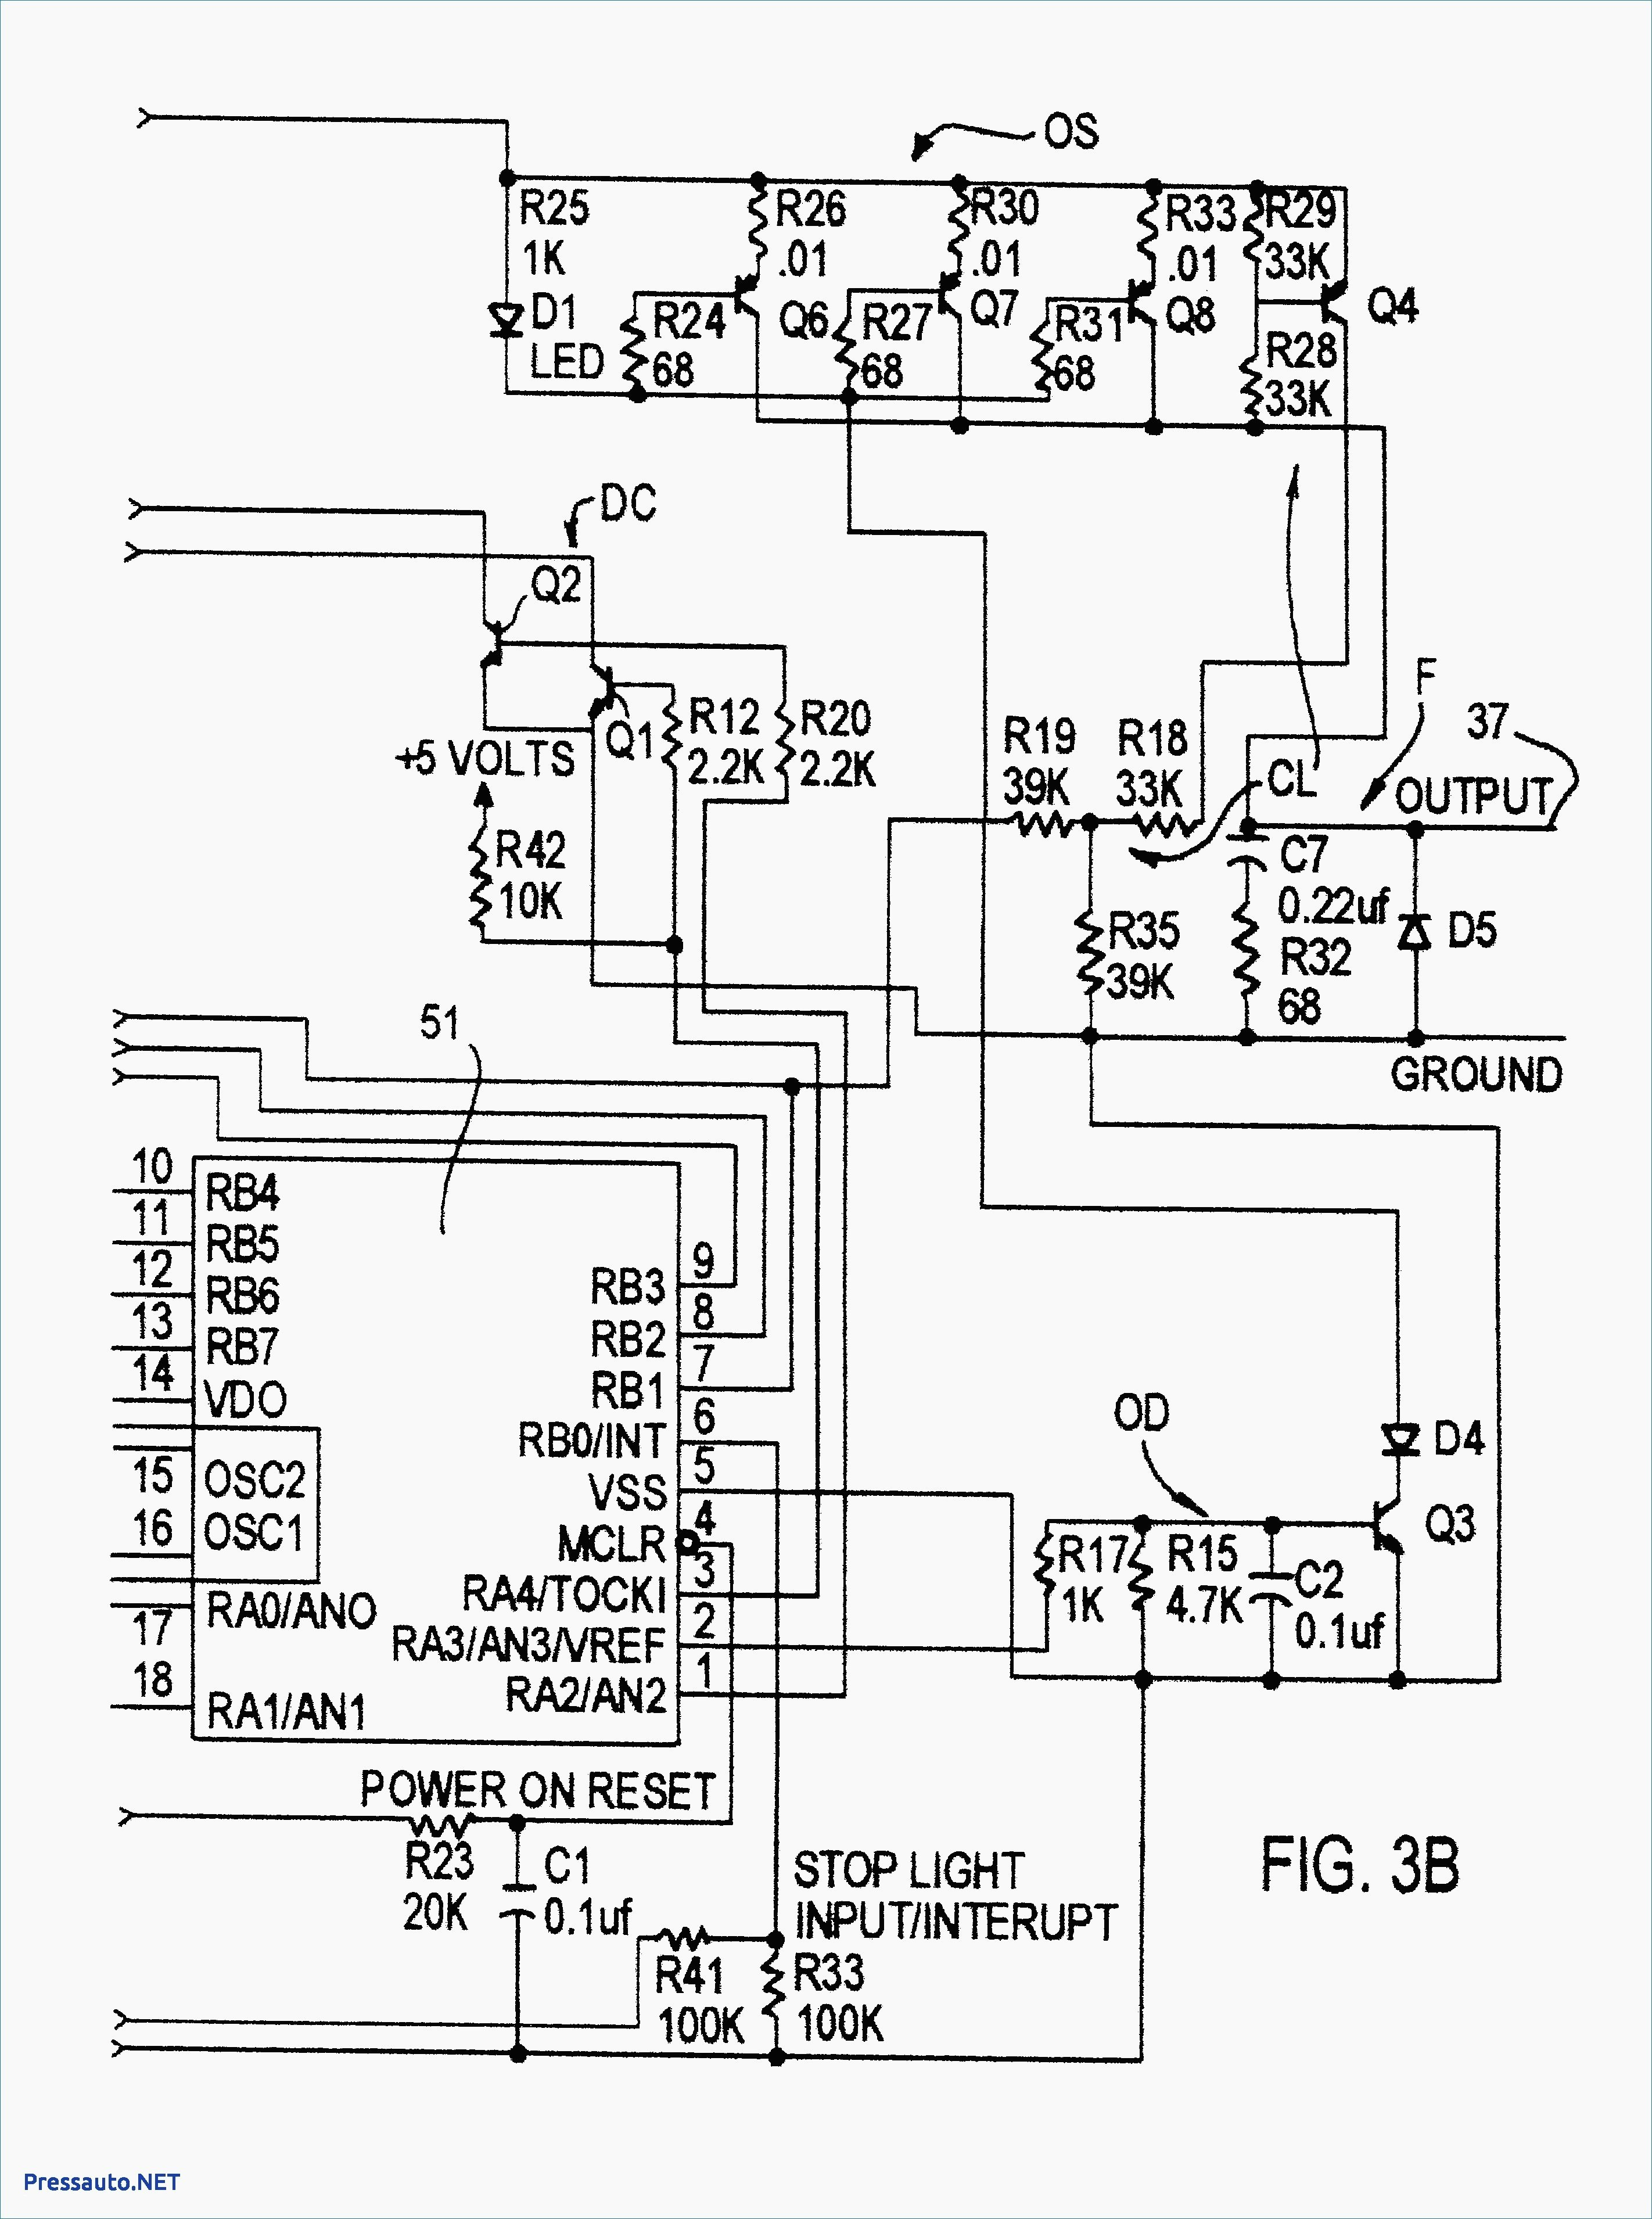 Shovelhead Starter Relay Wiring Diagram Simple 1970 Ford Mustang Starter Solenoid Wiring Diagram Ford Wiring